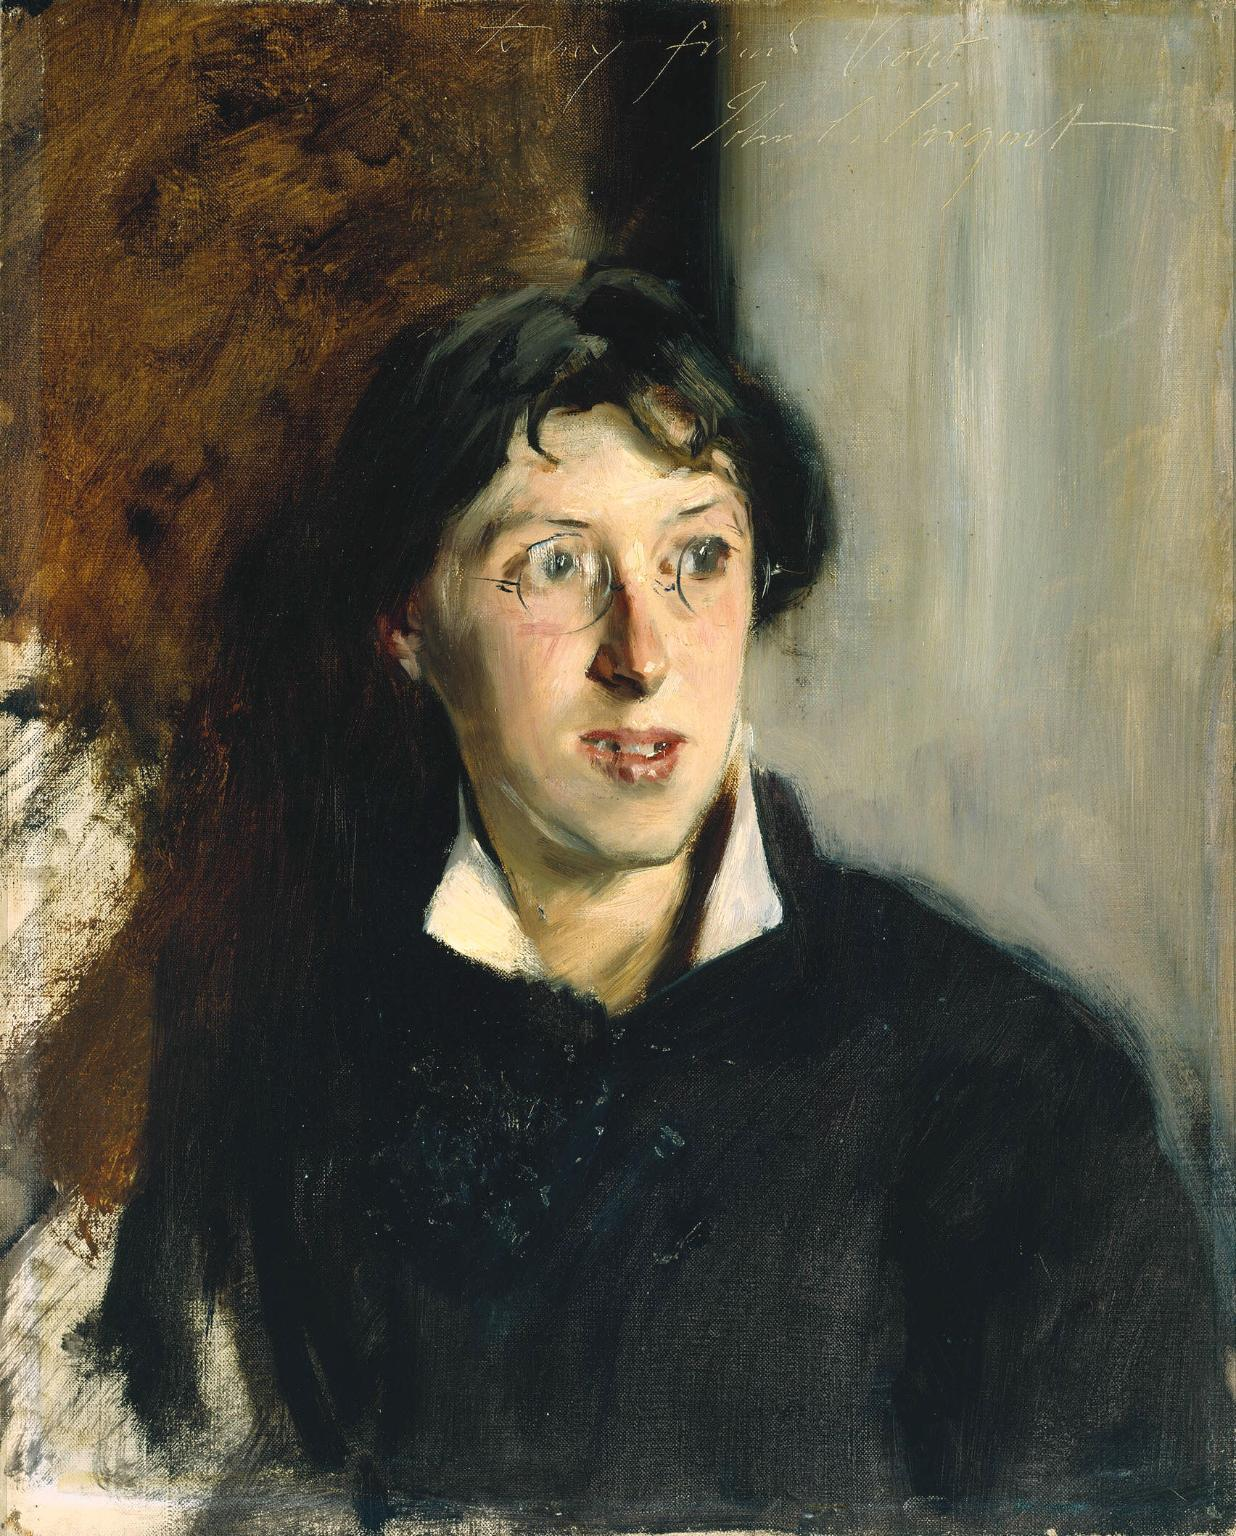 Vernon Lee by John Singer Sargent 1881